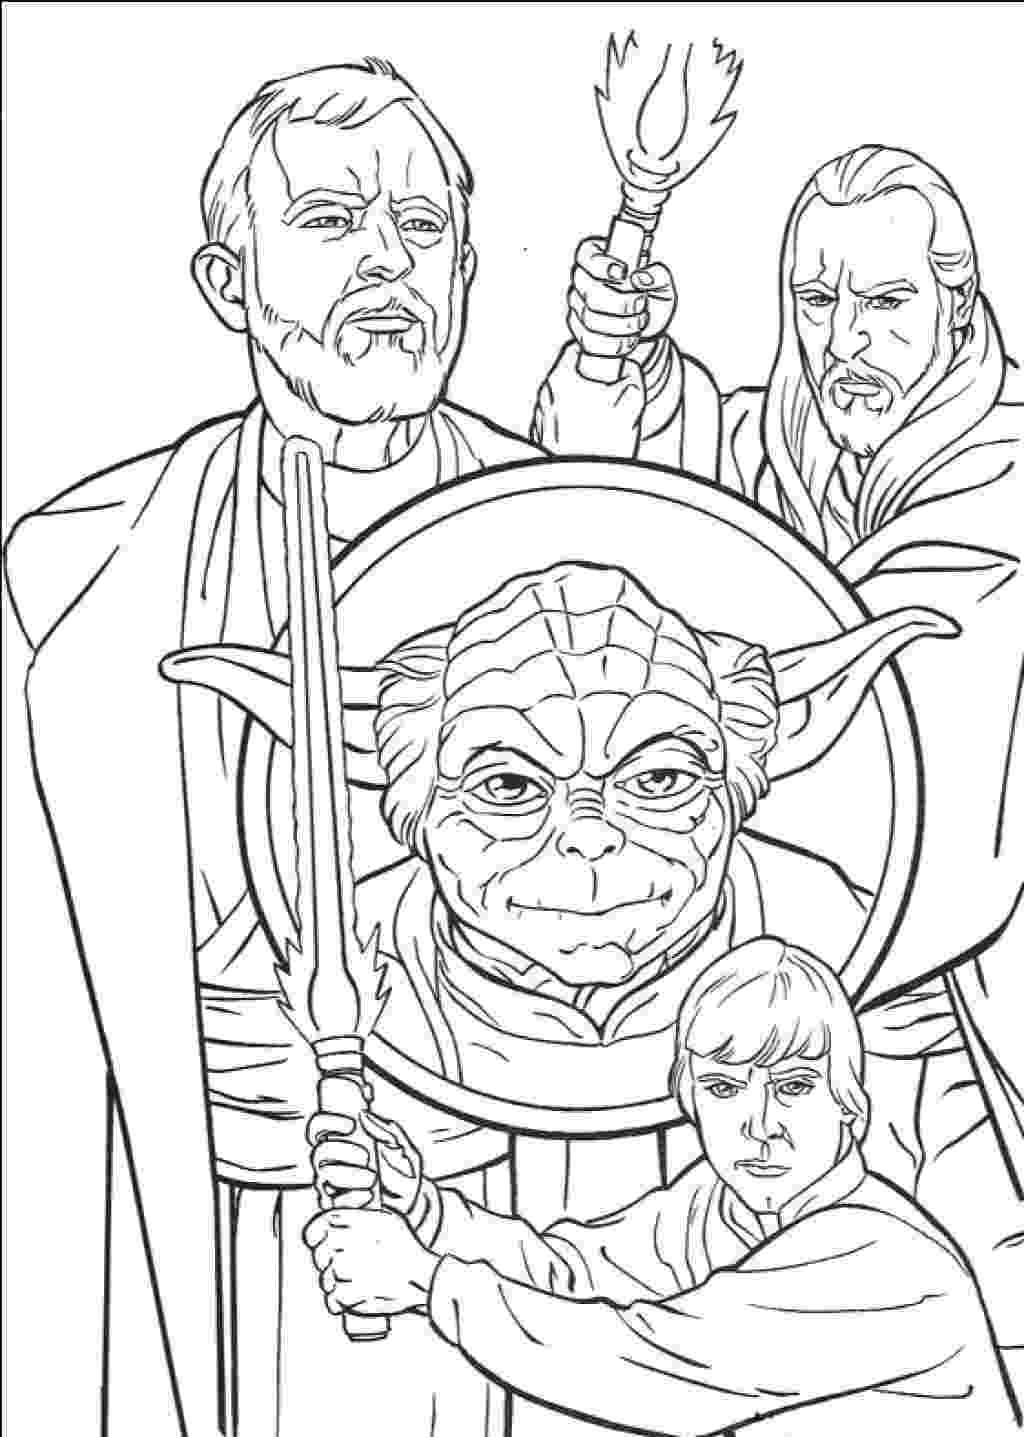 star wars characters coloring pages star wars characters coloring pages gallery free coloring pages characters star wars